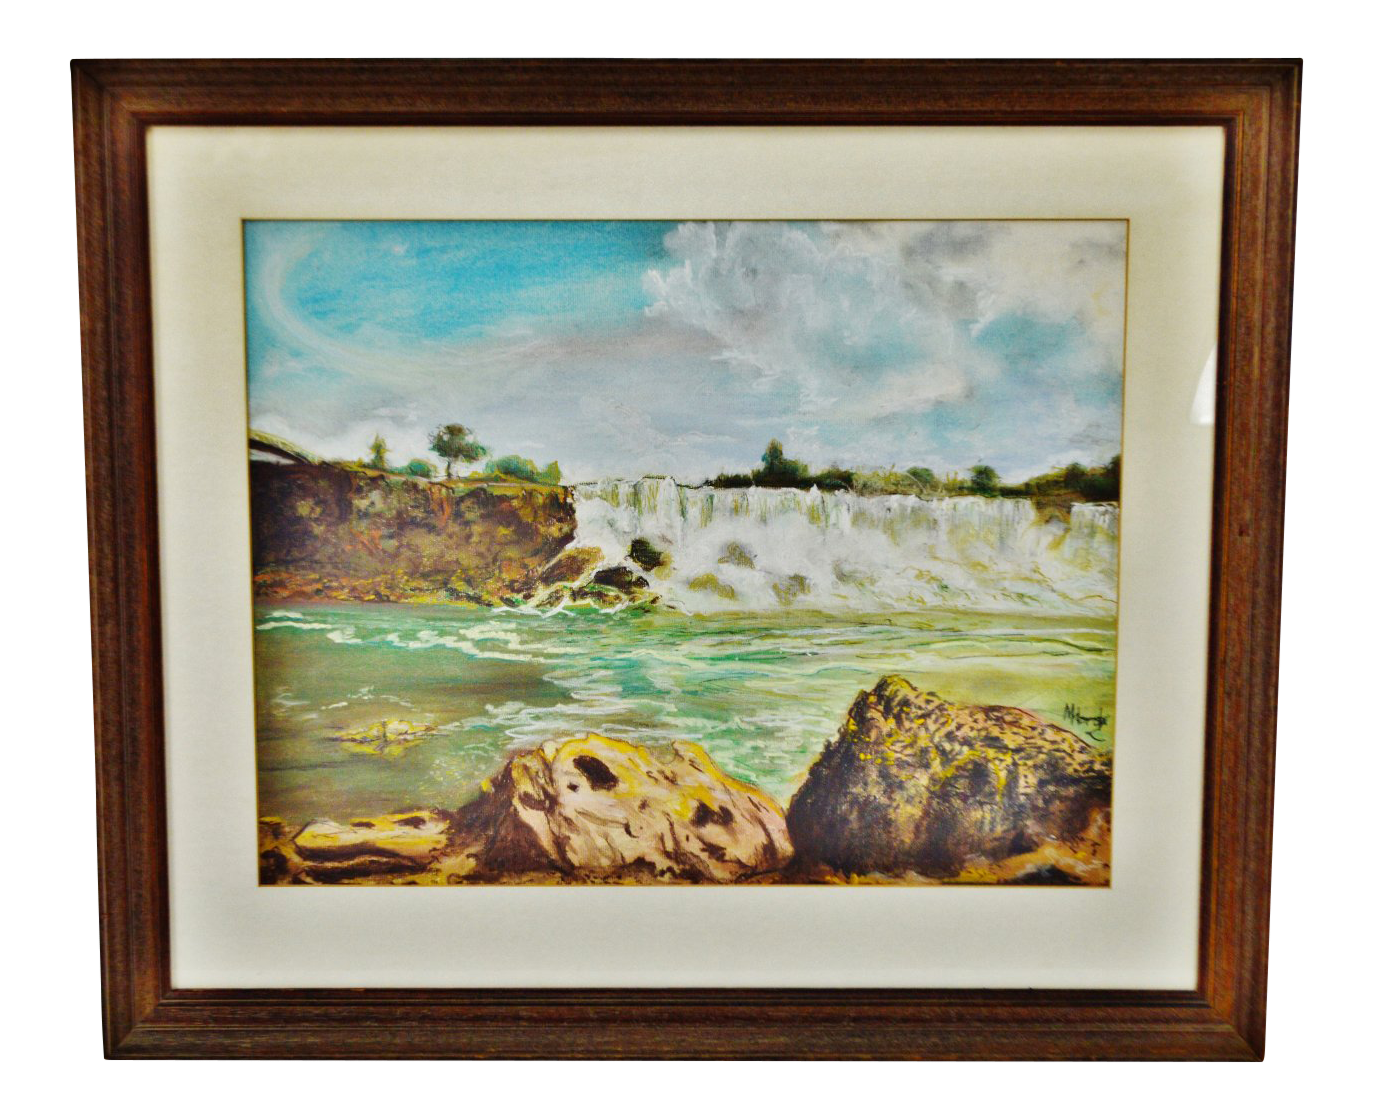 Waterfalls drawing pencil. Vintage framed waterfall landscape